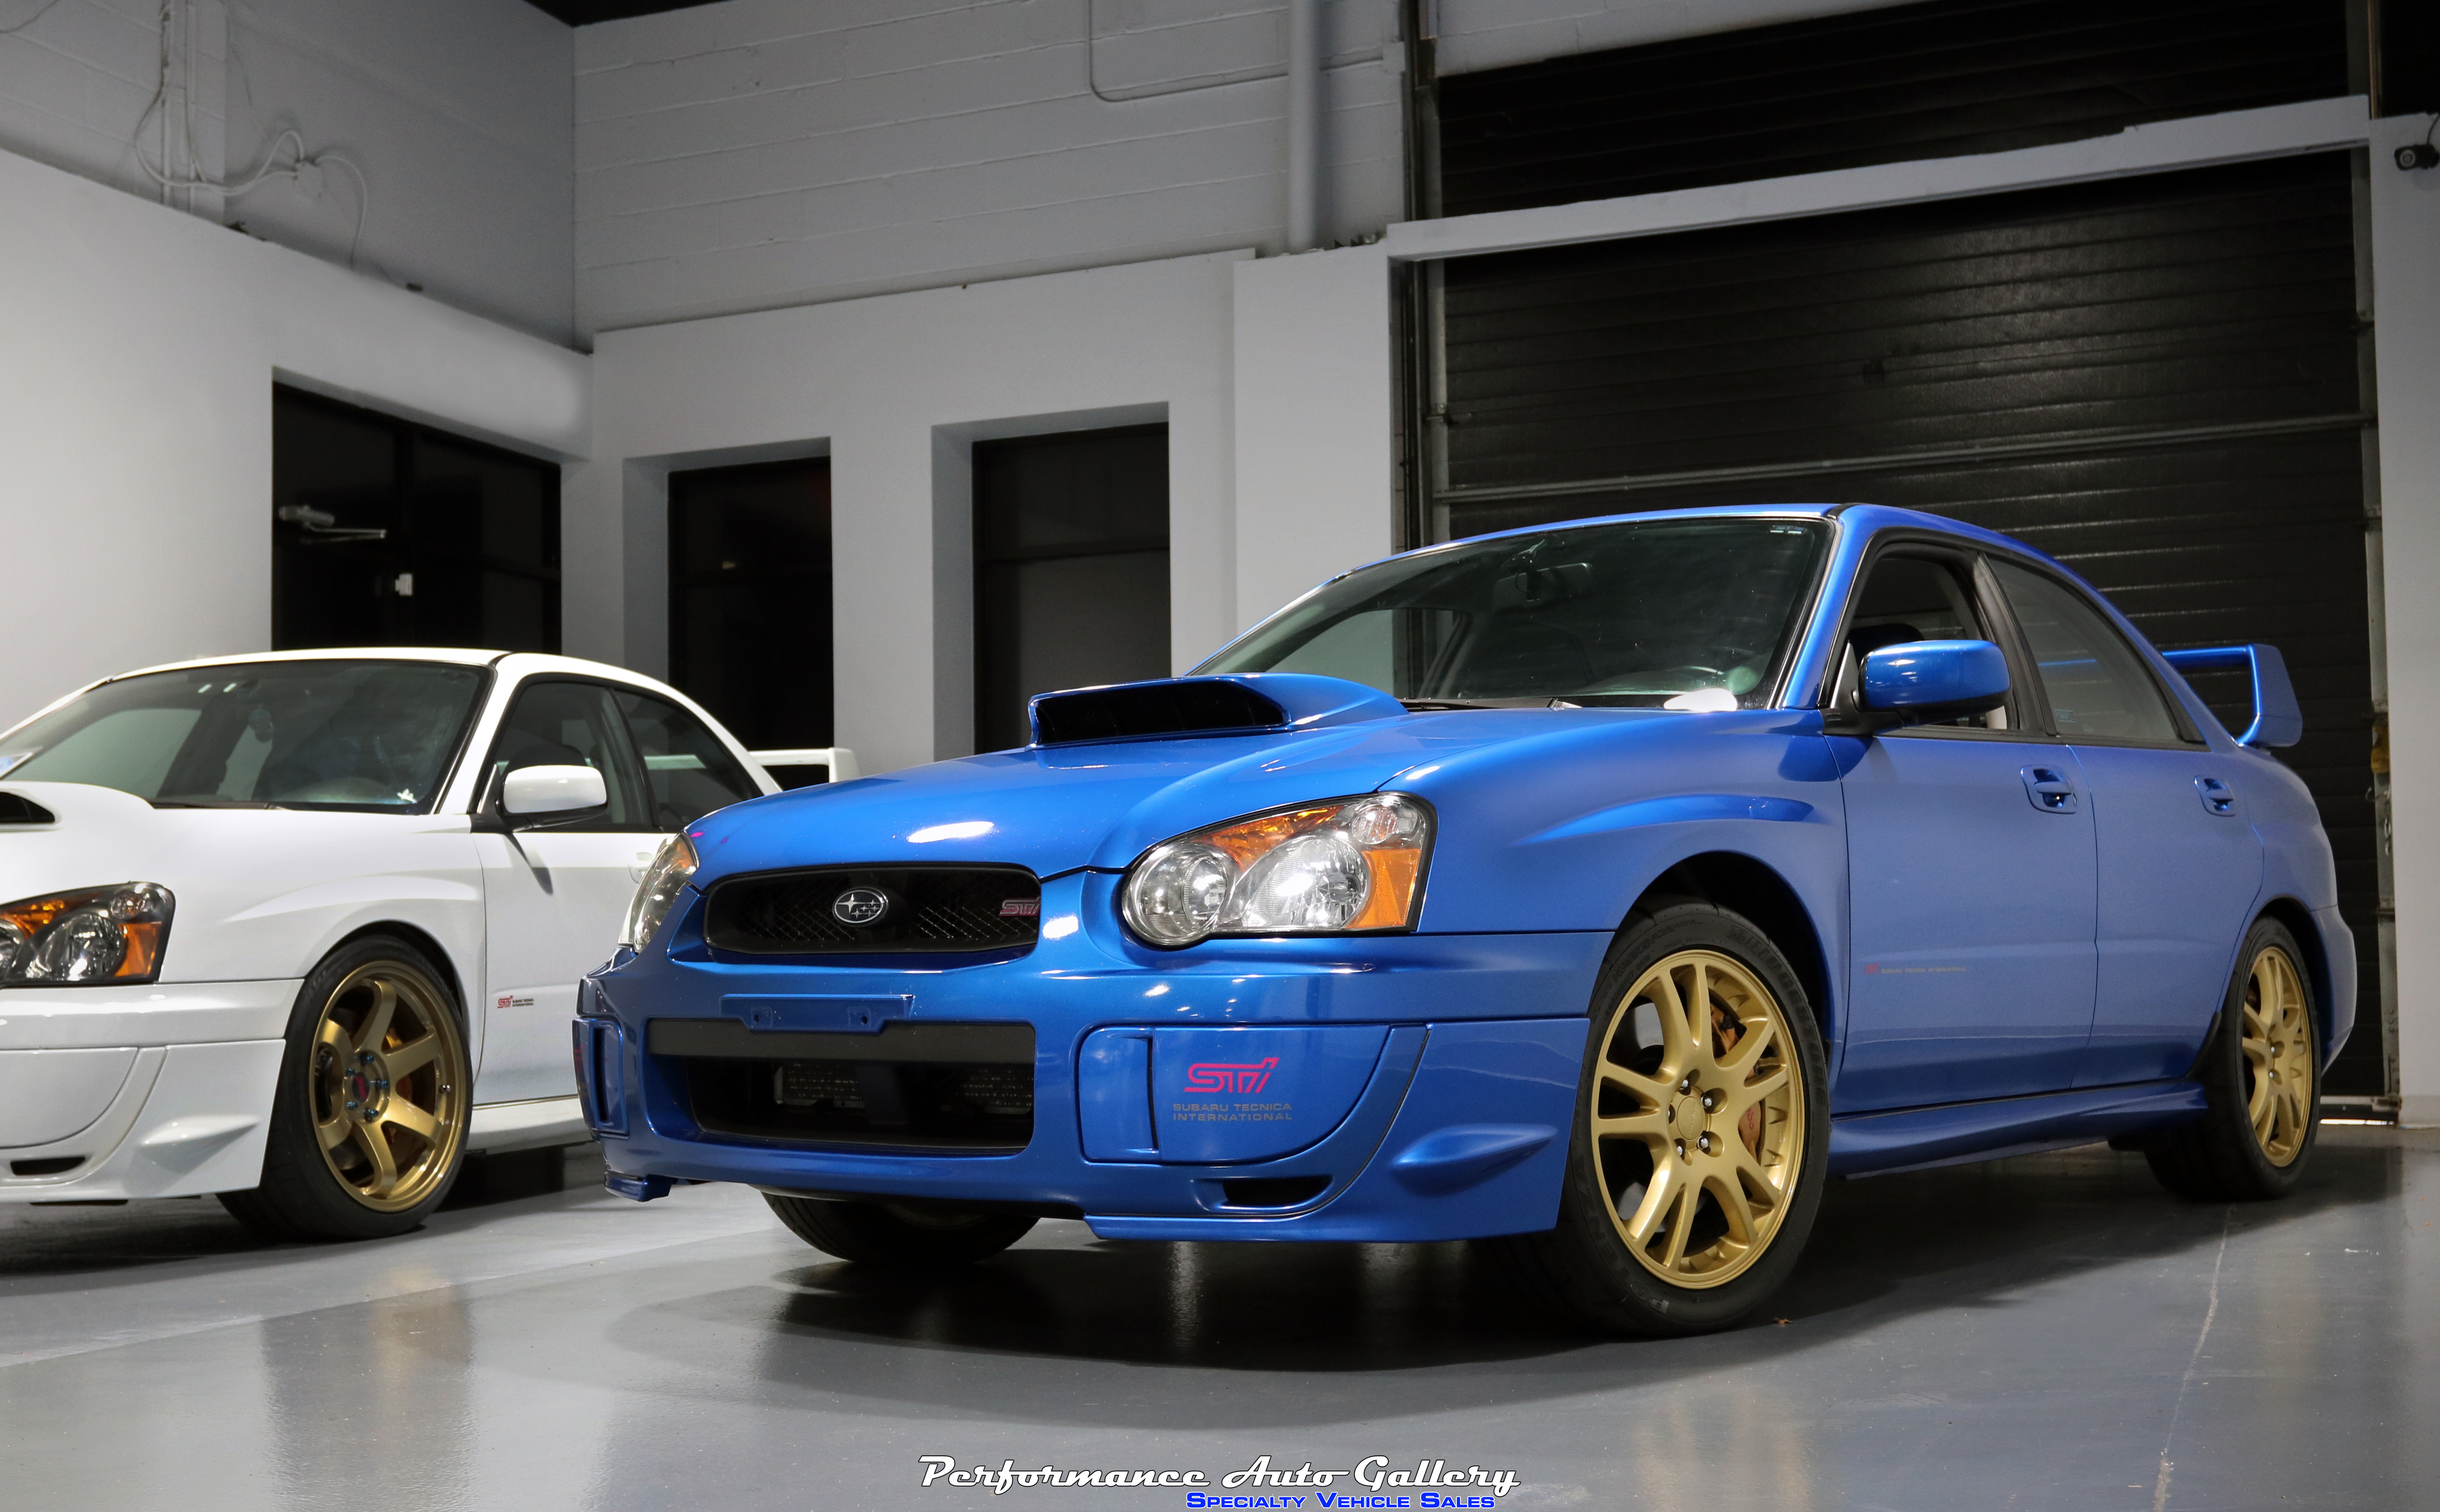 new arrival 2004 subaru wrx sti for sale 35k original. Black Bedroom Furniture Sets. Home Design Ideas